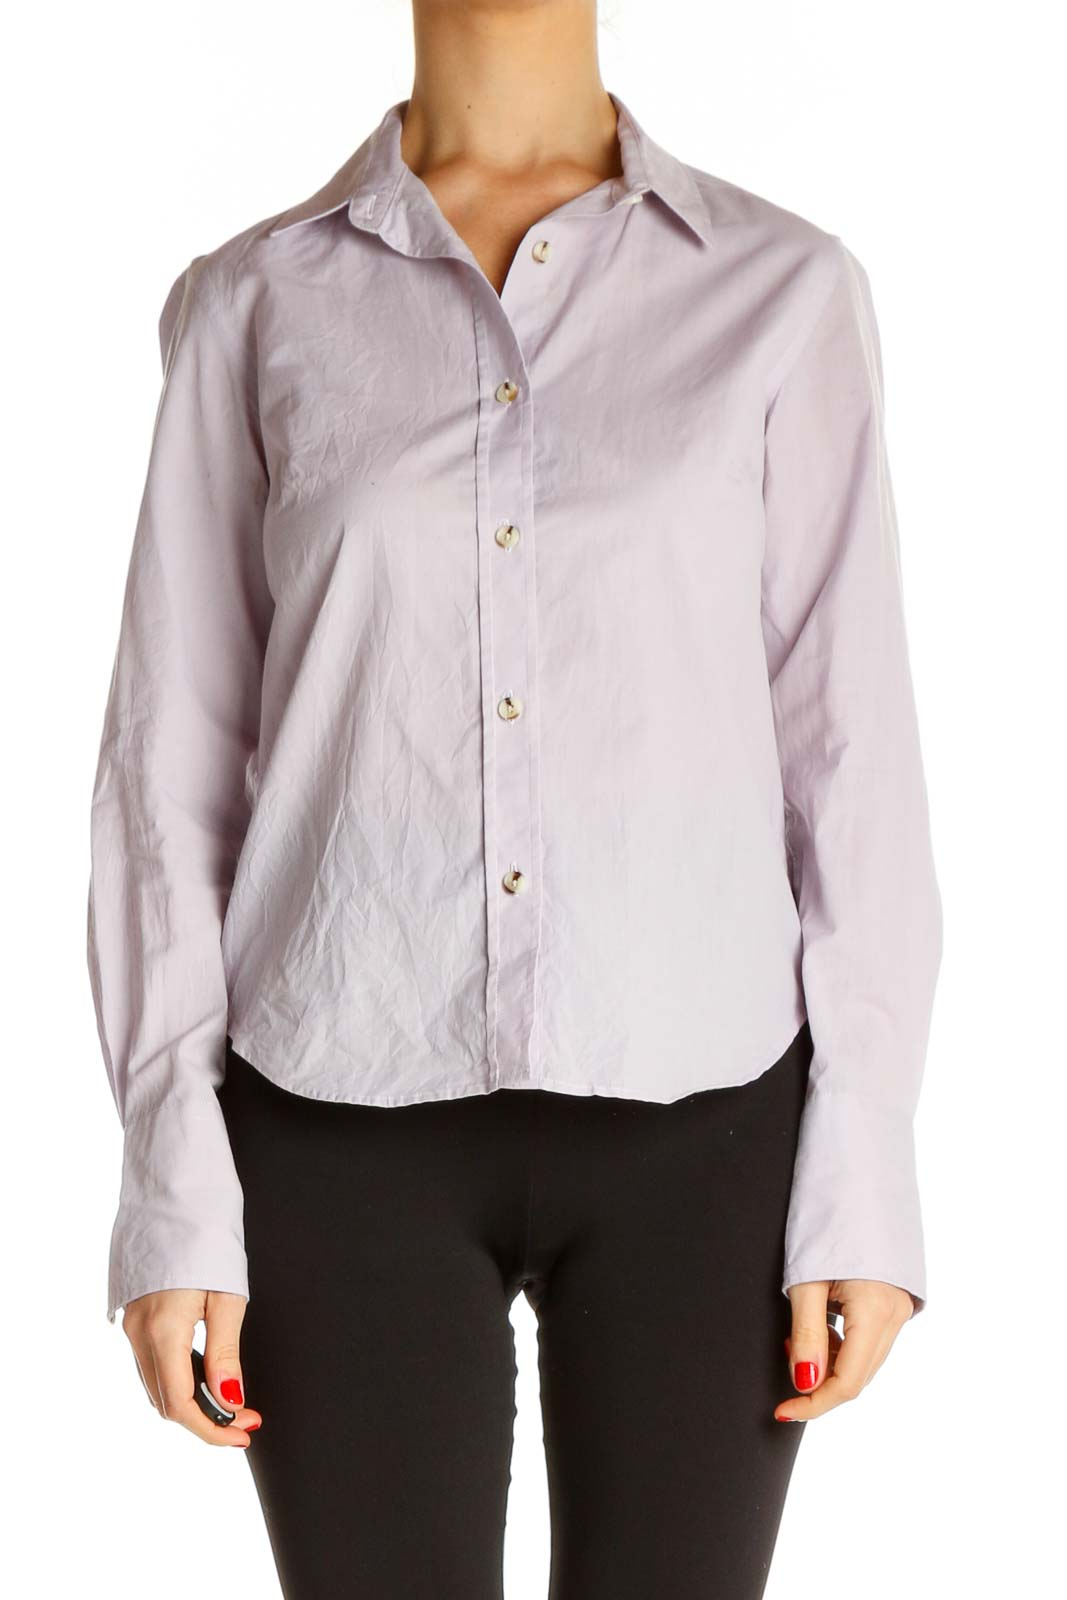 Purple Solid Formal Shirt Front